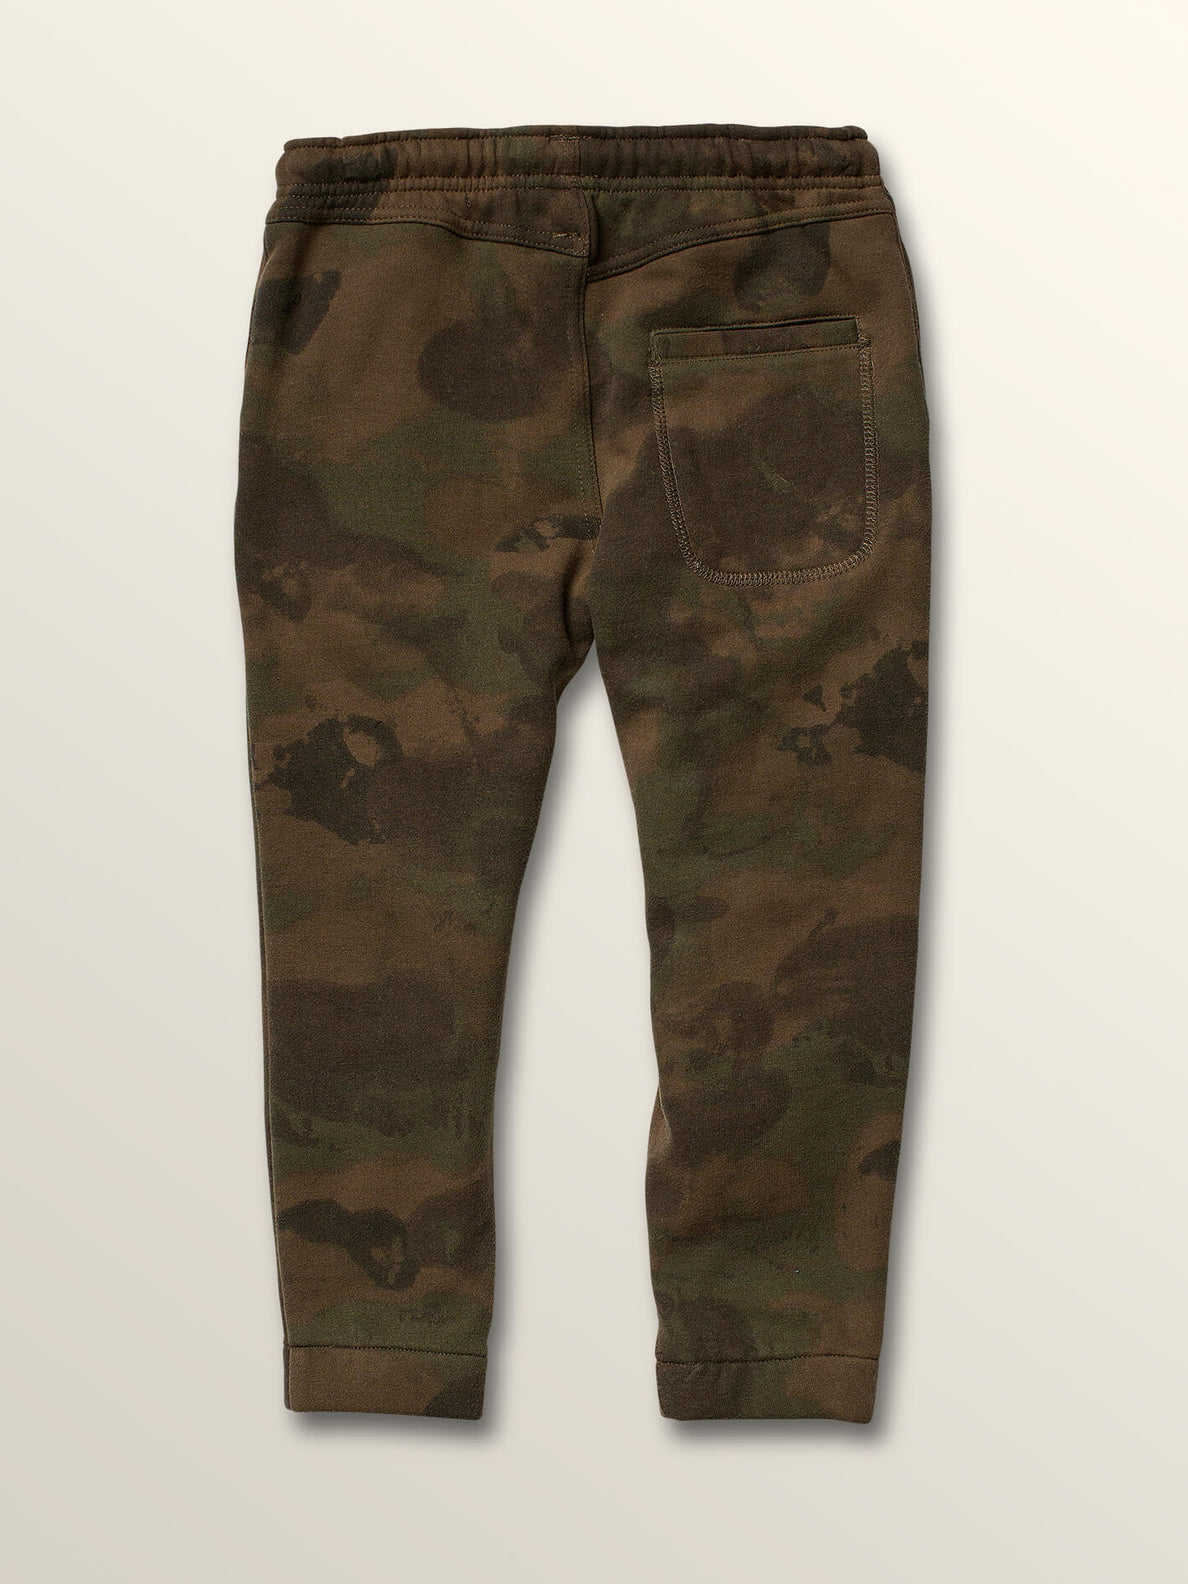 Little Boys Deadly Stones Pants In Camouflage, Back View